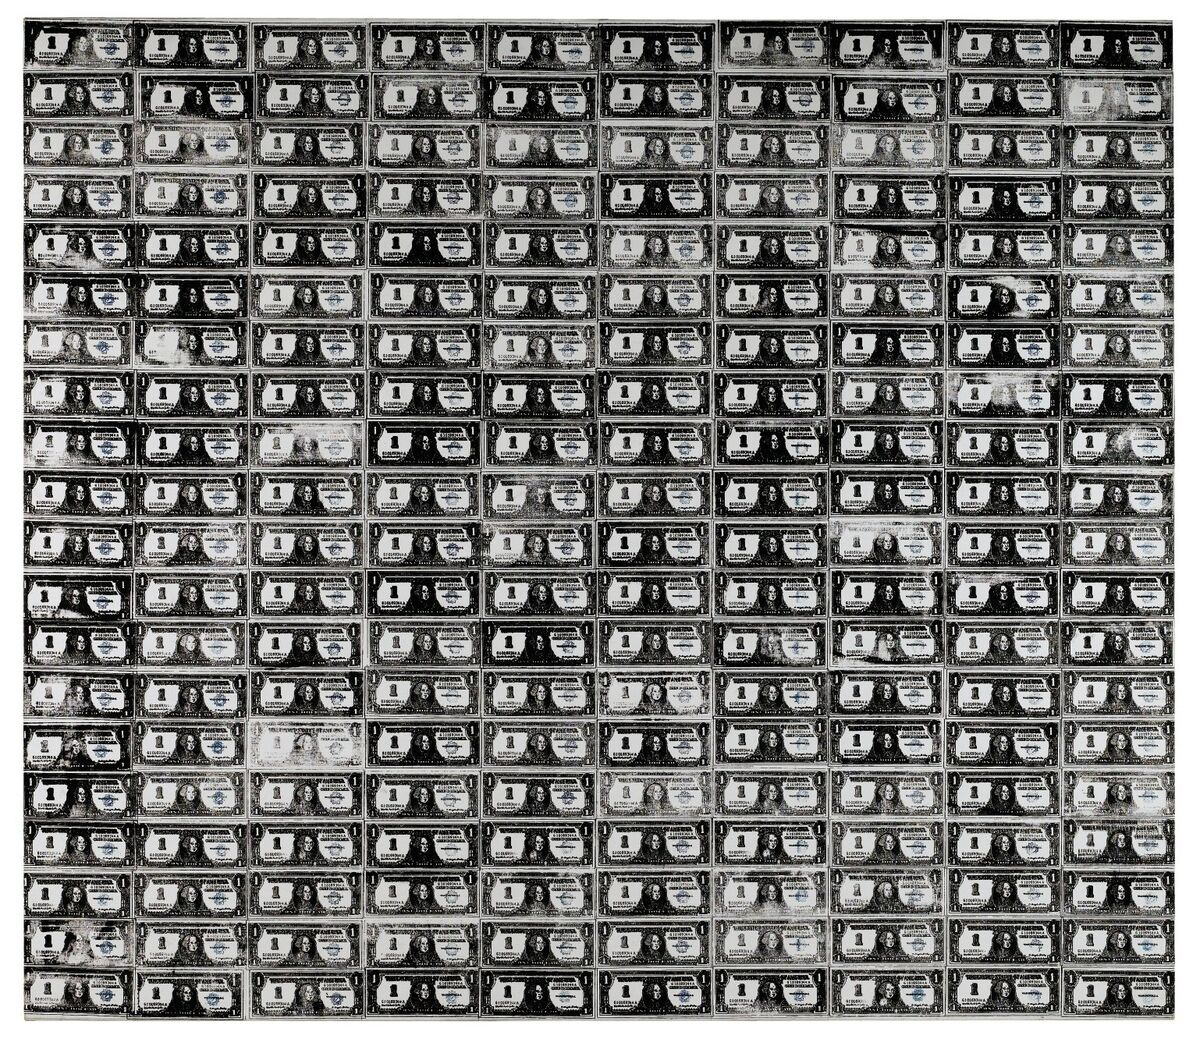 Andy Warhol, 200 One Dollar Bills, 1962. Courtesy of Sotheby's.